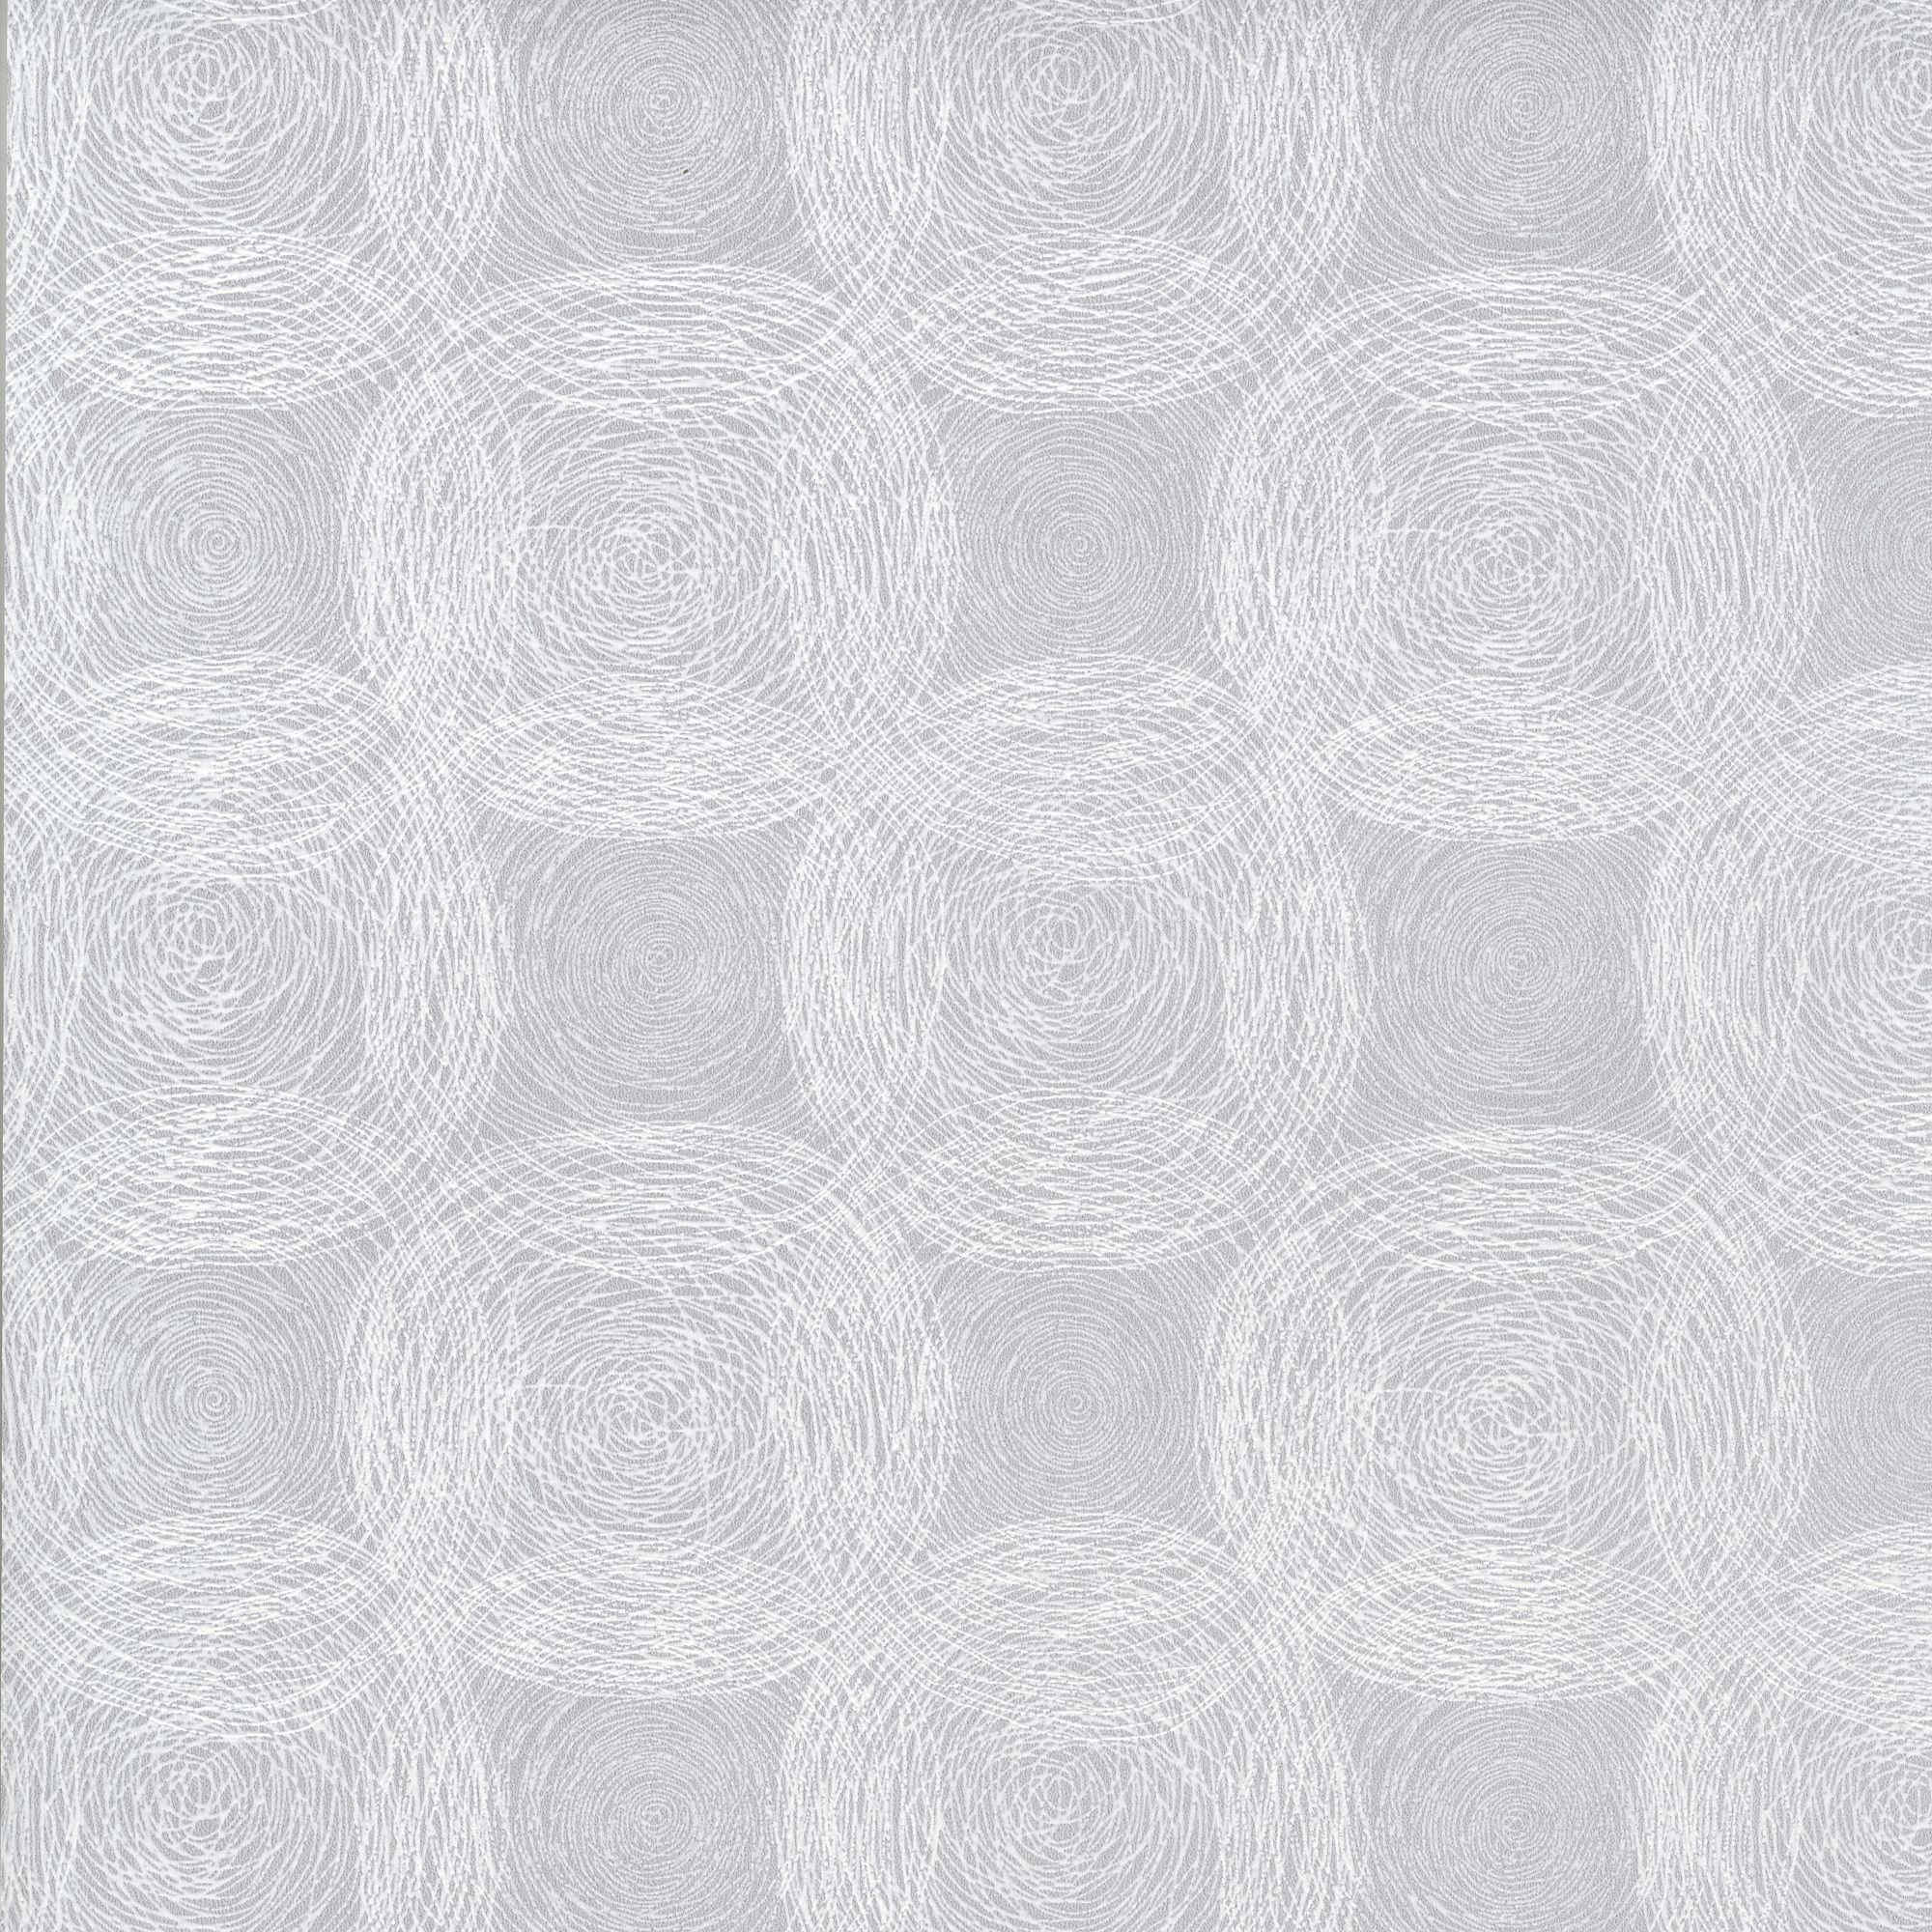 colours lila white grey circles wallpaper clearance. Black Bedroom Furniture Sets. Home Design Ideas